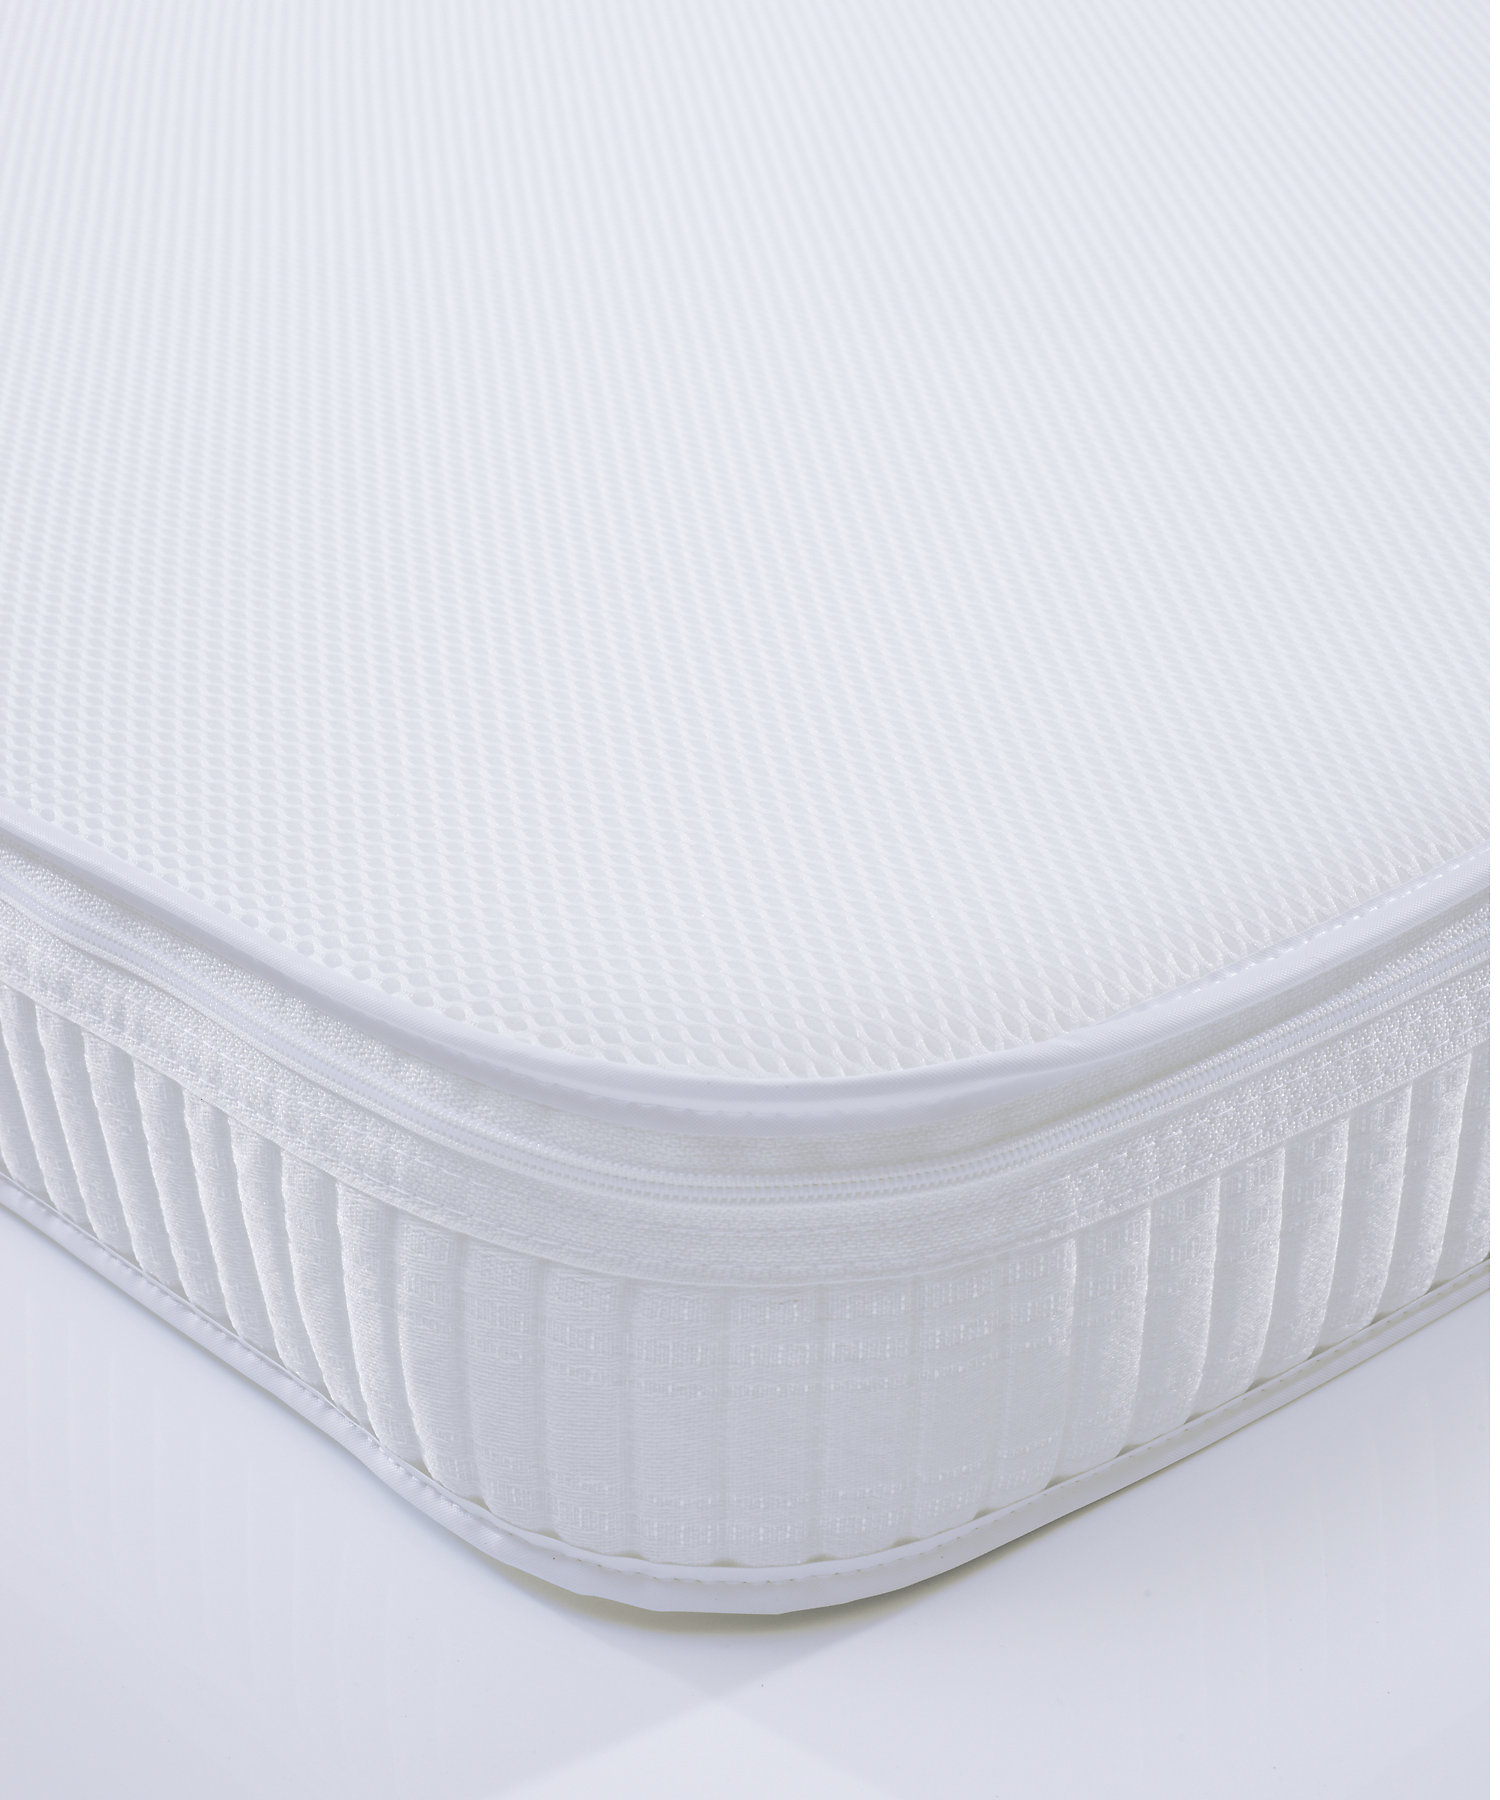 Mothercare | Mothercare Cot Bed Safeseal Foam Mattress With Spacetec And Coolmax Freshfx White